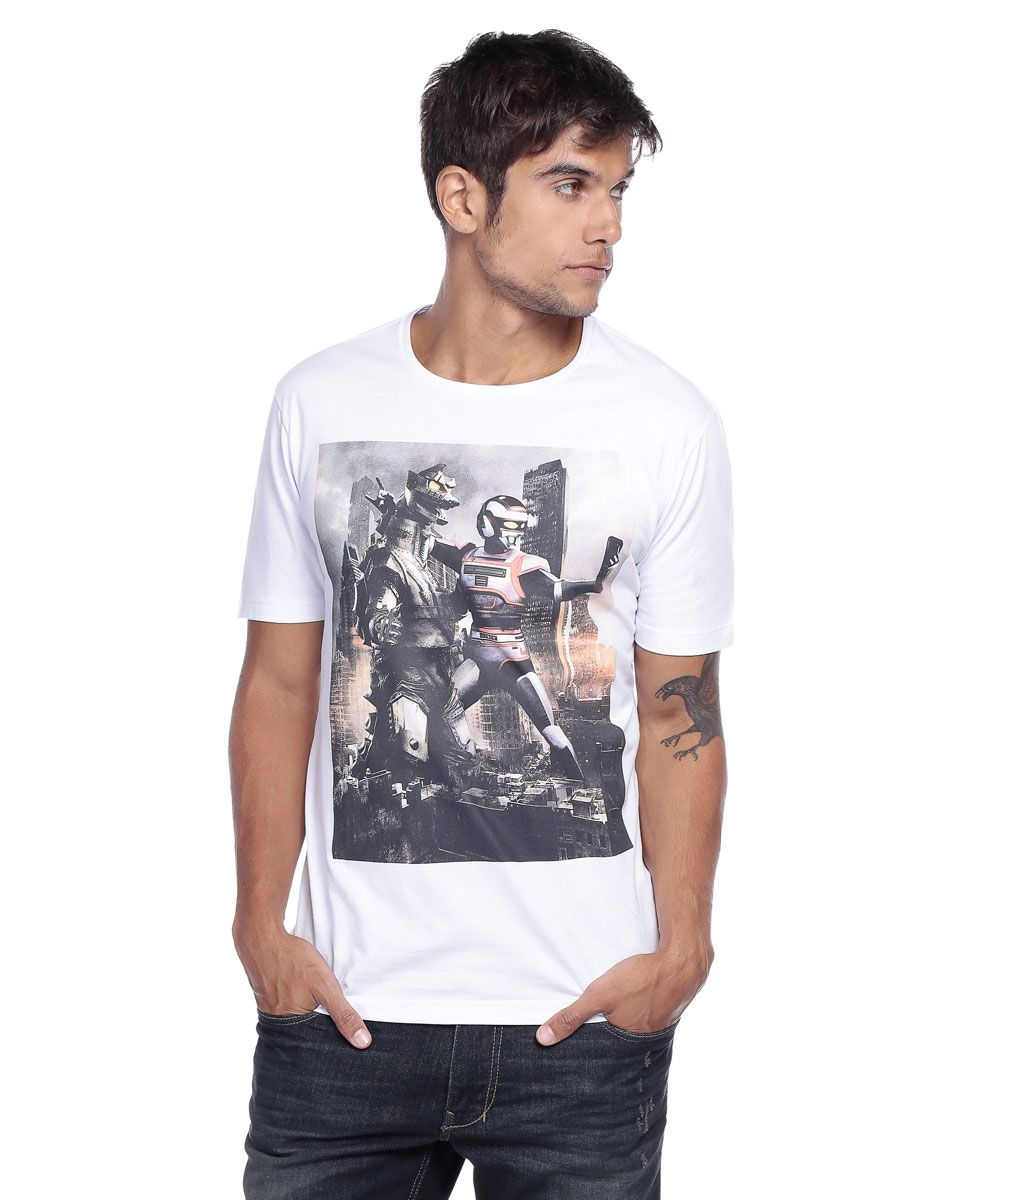 fd47d699b Camiseta Masculina com Estampa do Jaspion - Lojas Renner ...